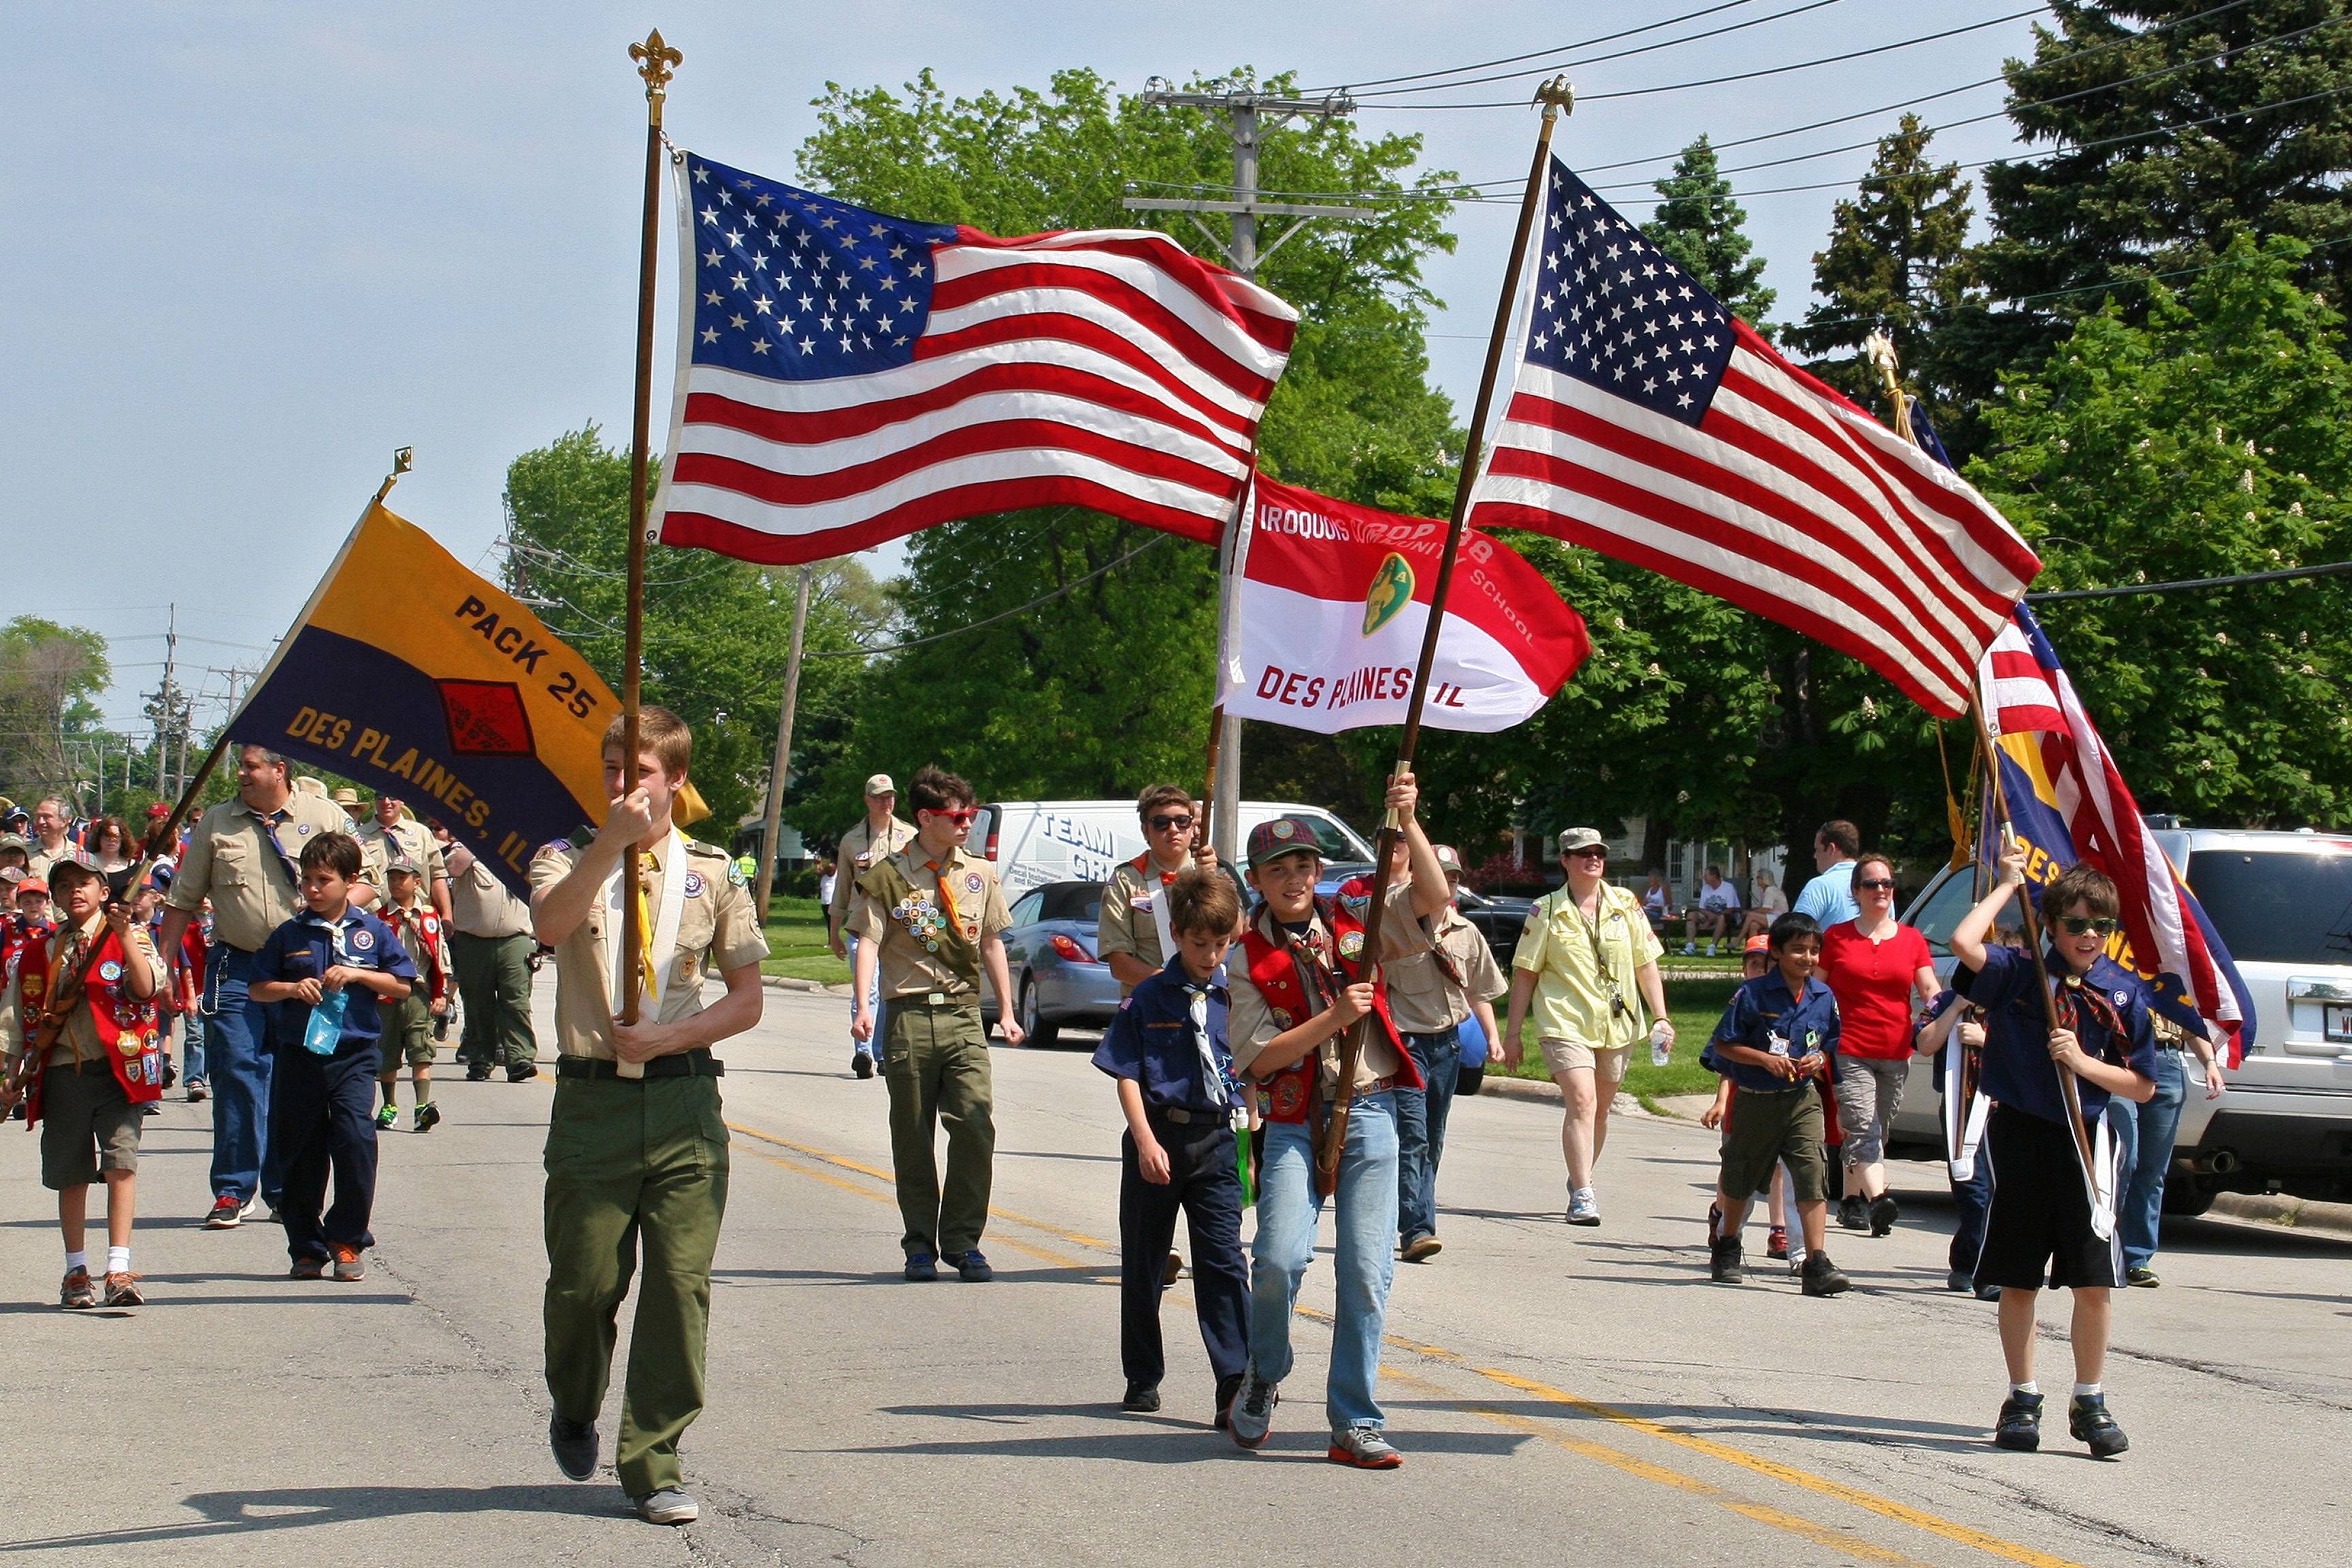 (Left to Right) Cub Scout Pack 25, Boy Scout Troop 38, and Cub Scout Pack 997 lead the Memorial Day Parade down Lee Street to the Lake Park Memorial Pavilion on May 26.